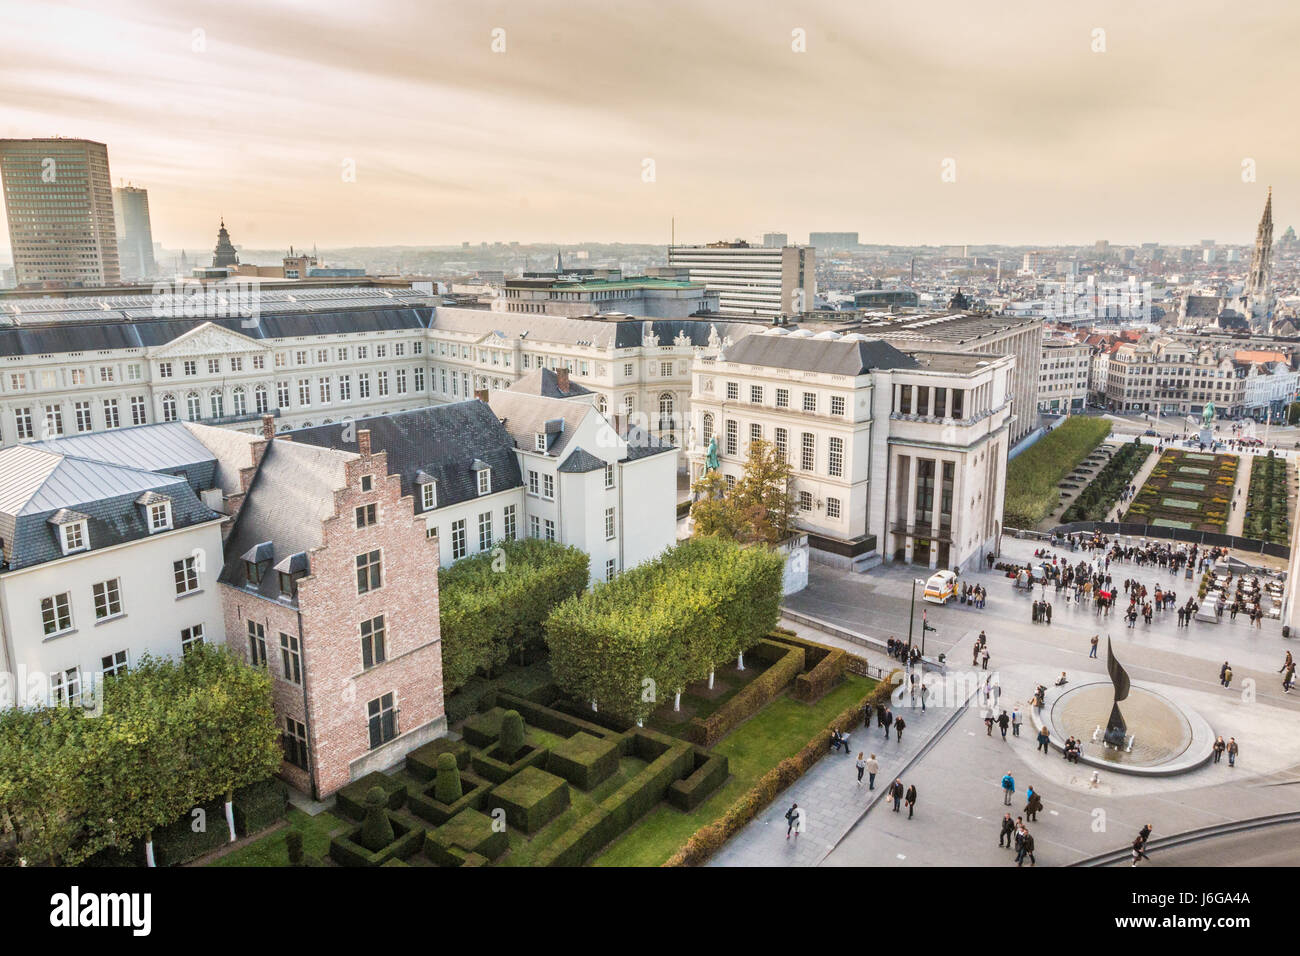 City of Brussels in Belgium - Stock Image